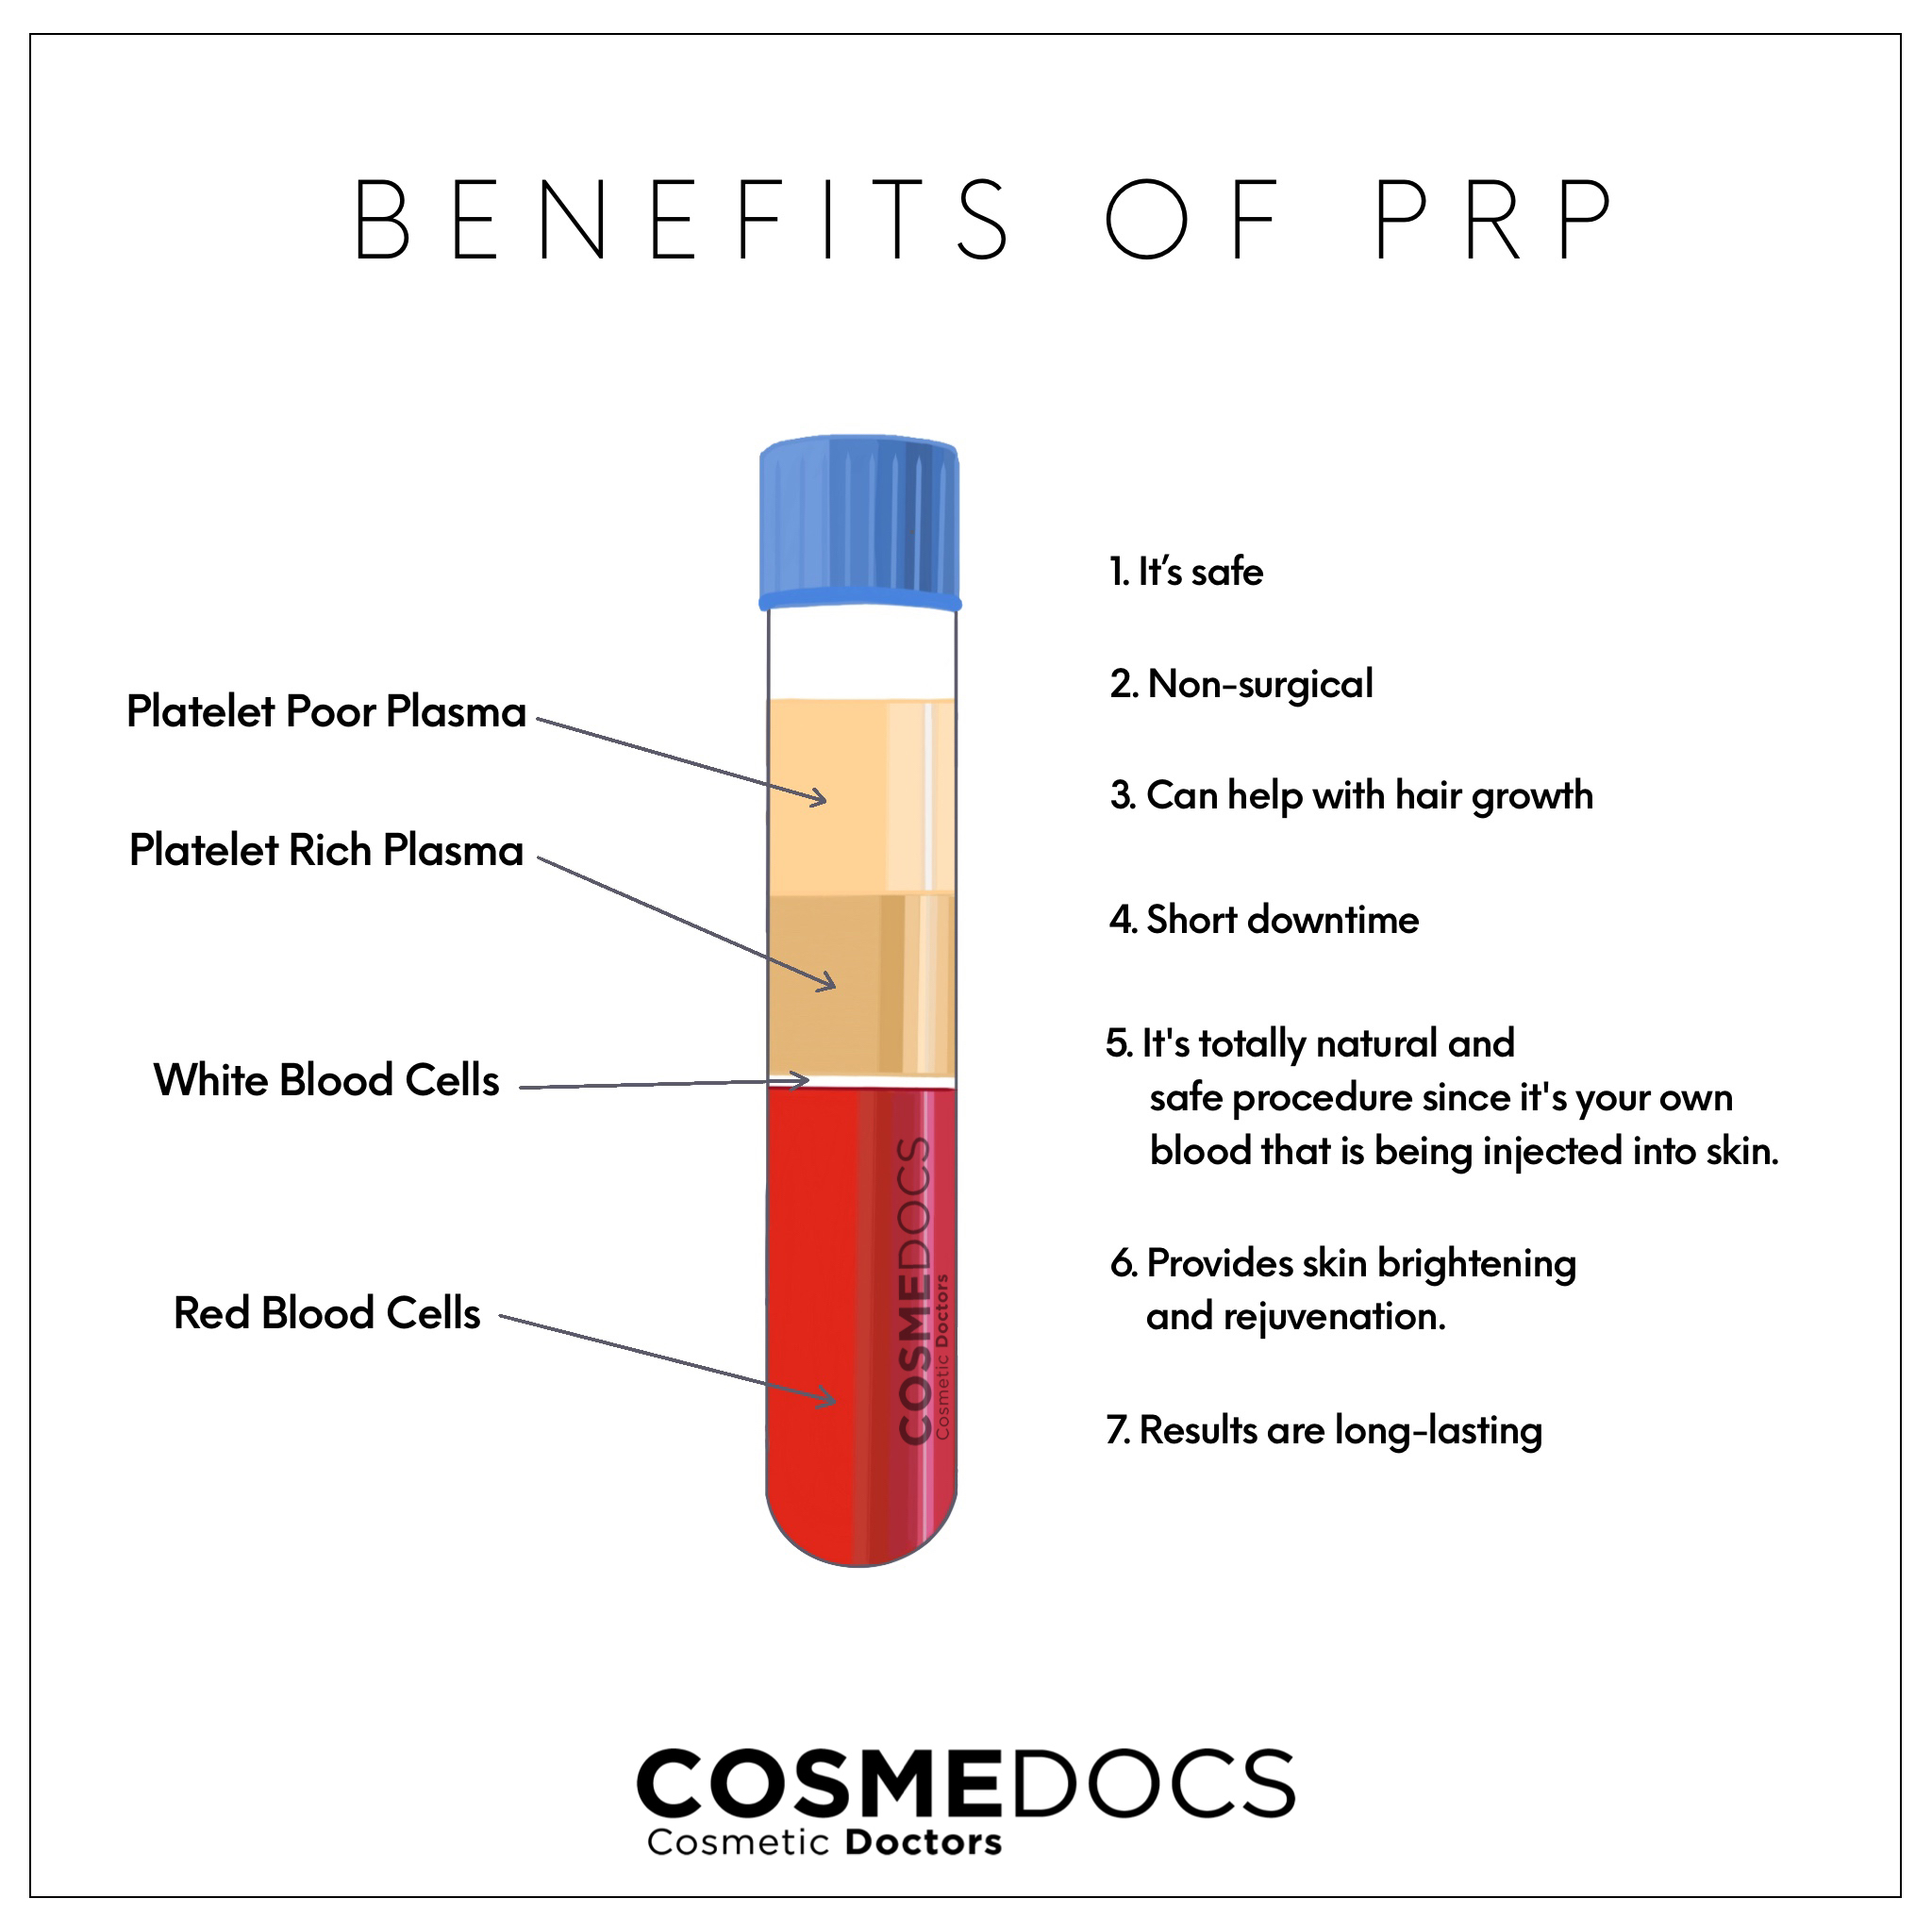 Benefits of prp